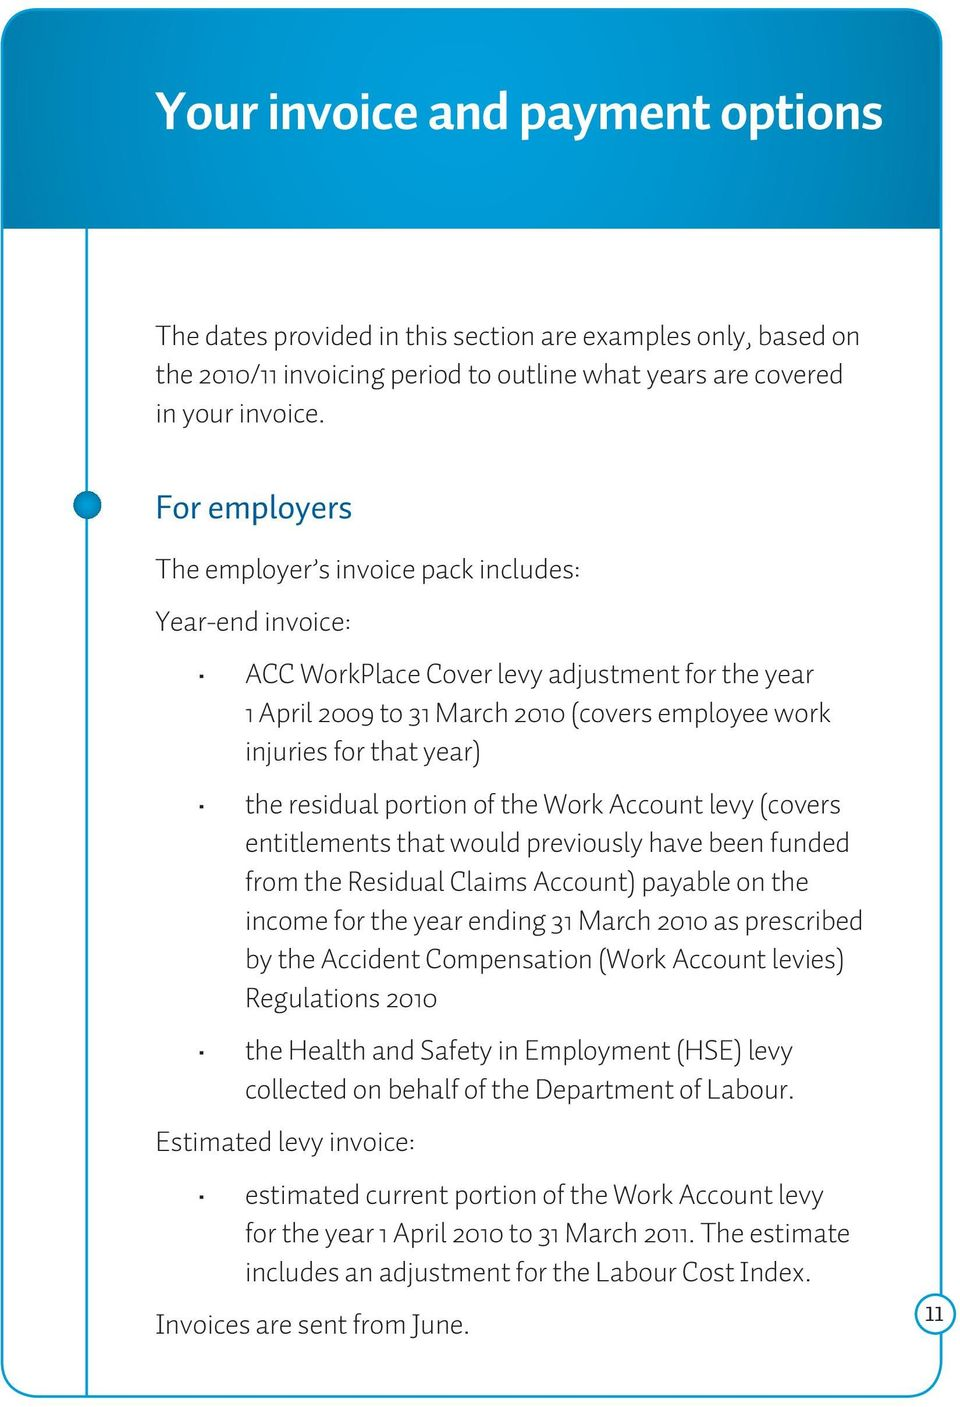 residual portion of the Work Account levy (covers entitlements that would previously have been funded from the Residual Claims Account) payable on the income for the year ending 31 March 2010 as